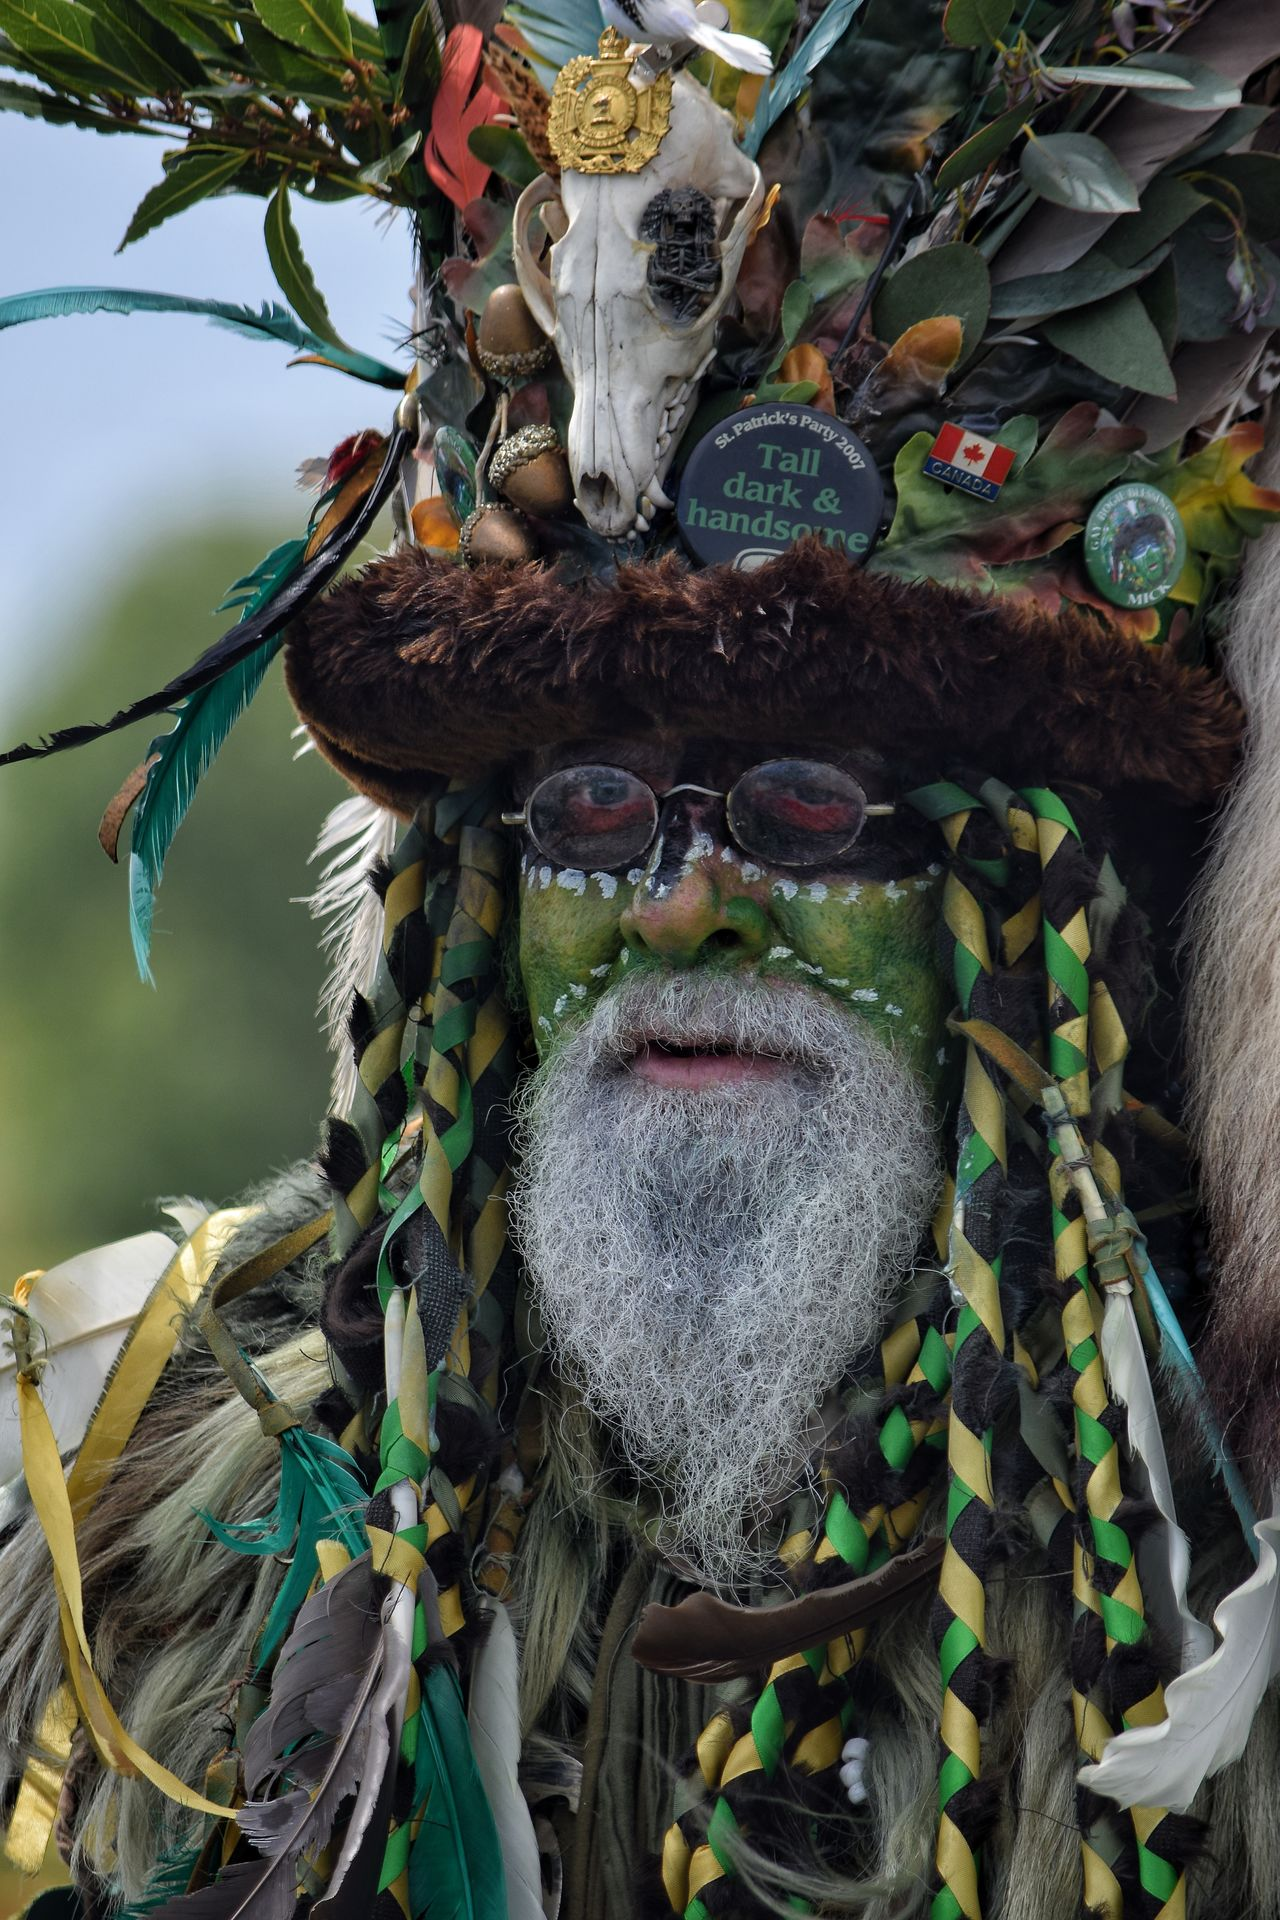 Jack In The Green Jack In The Green Festival May Day 2017 Hastings East Sussex Costume Celebration Parade Green Face Close-up Pagan Outdoors Bearded Man Man Portrait People Festival One Man Only May Festival Green Beard May Day Face Make Up Green Man The Portraitist - 2017 EyeEm Awards